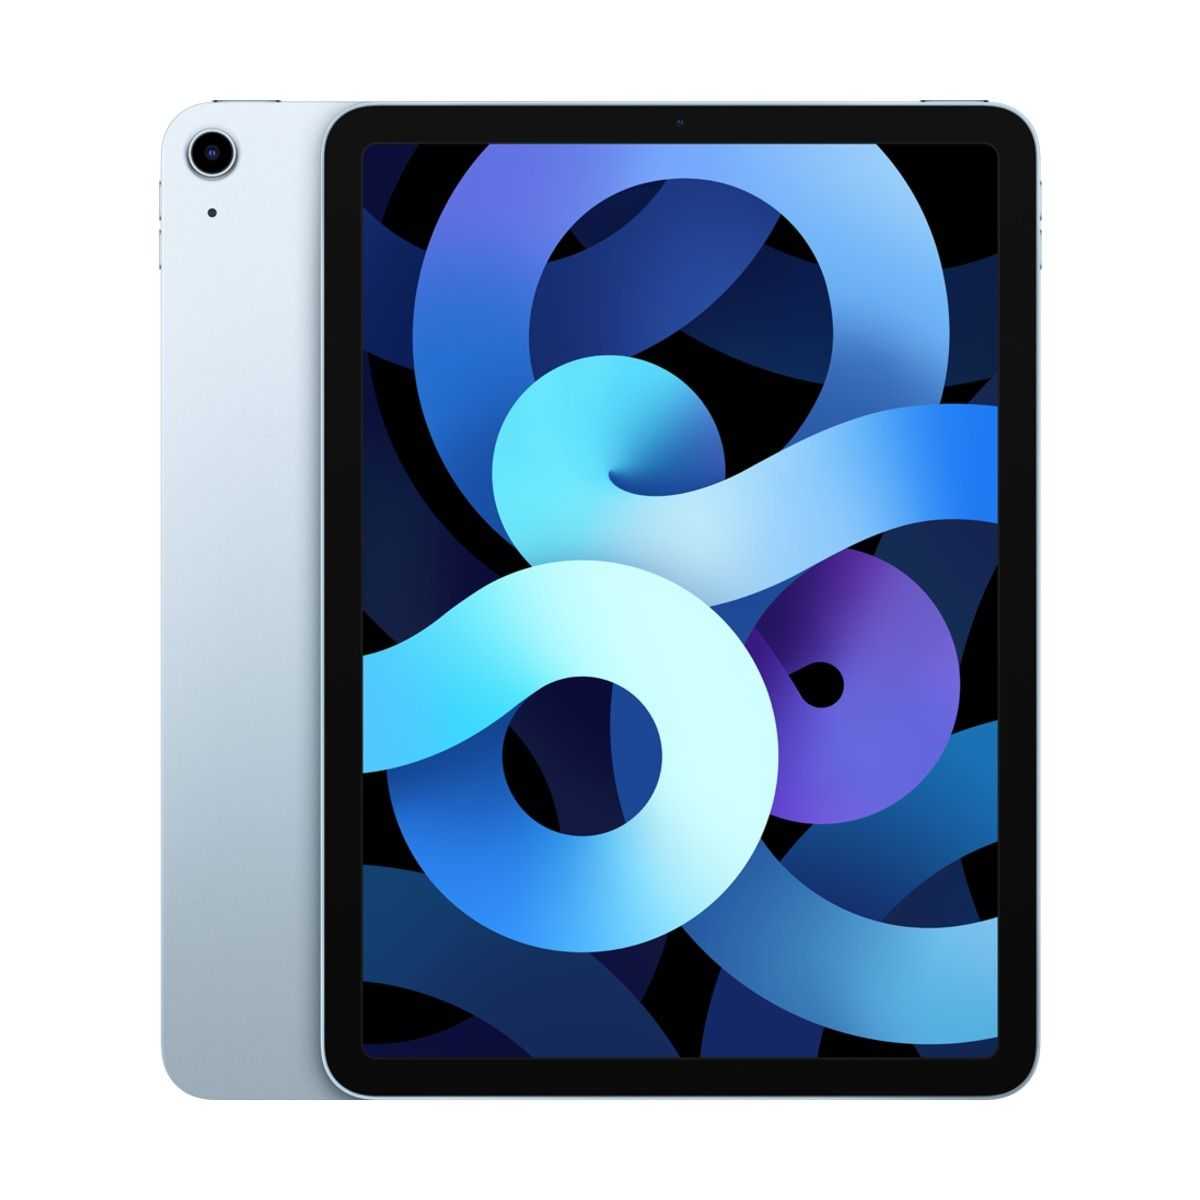 iPad Air Wi-Fi + Cell 64GB - Sky Blue / SK